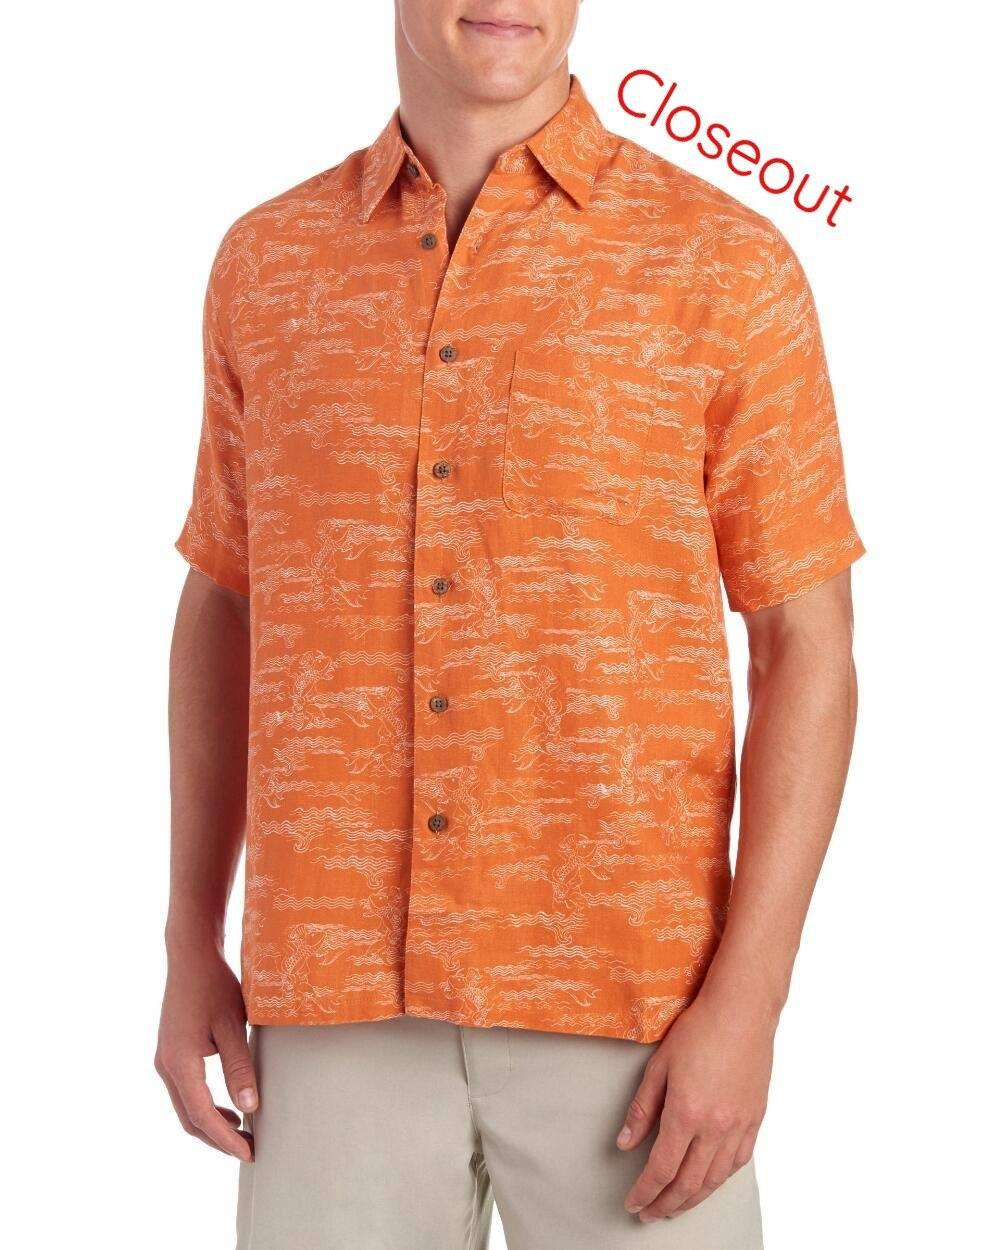 Mens Orange Silk Hawaiian Camp Shirt - Good Life Apparel